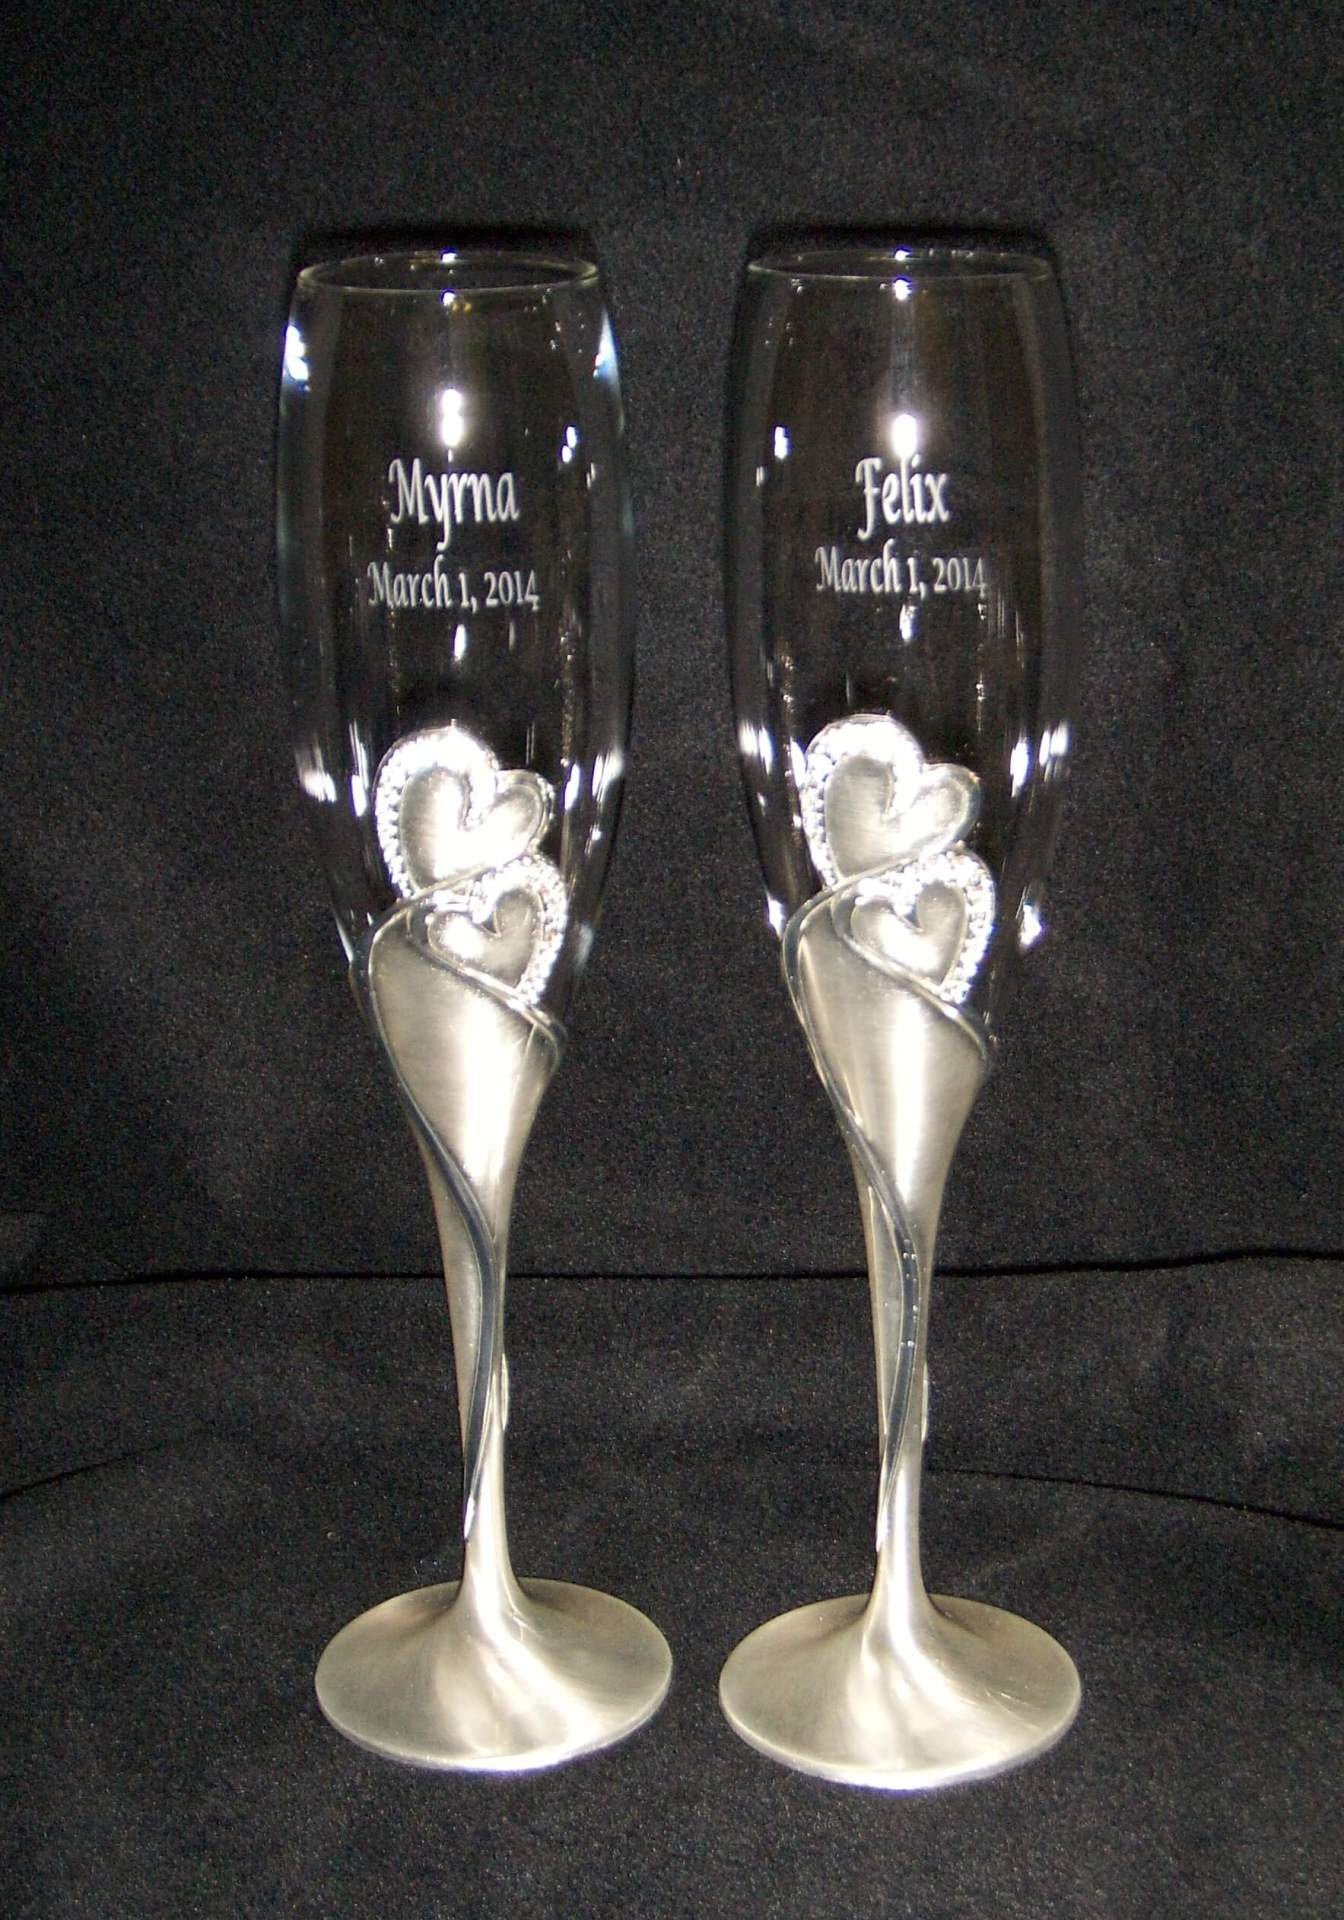 etched wedding flutes, etched toasting flutes, wedding flutes, etched glass flutes